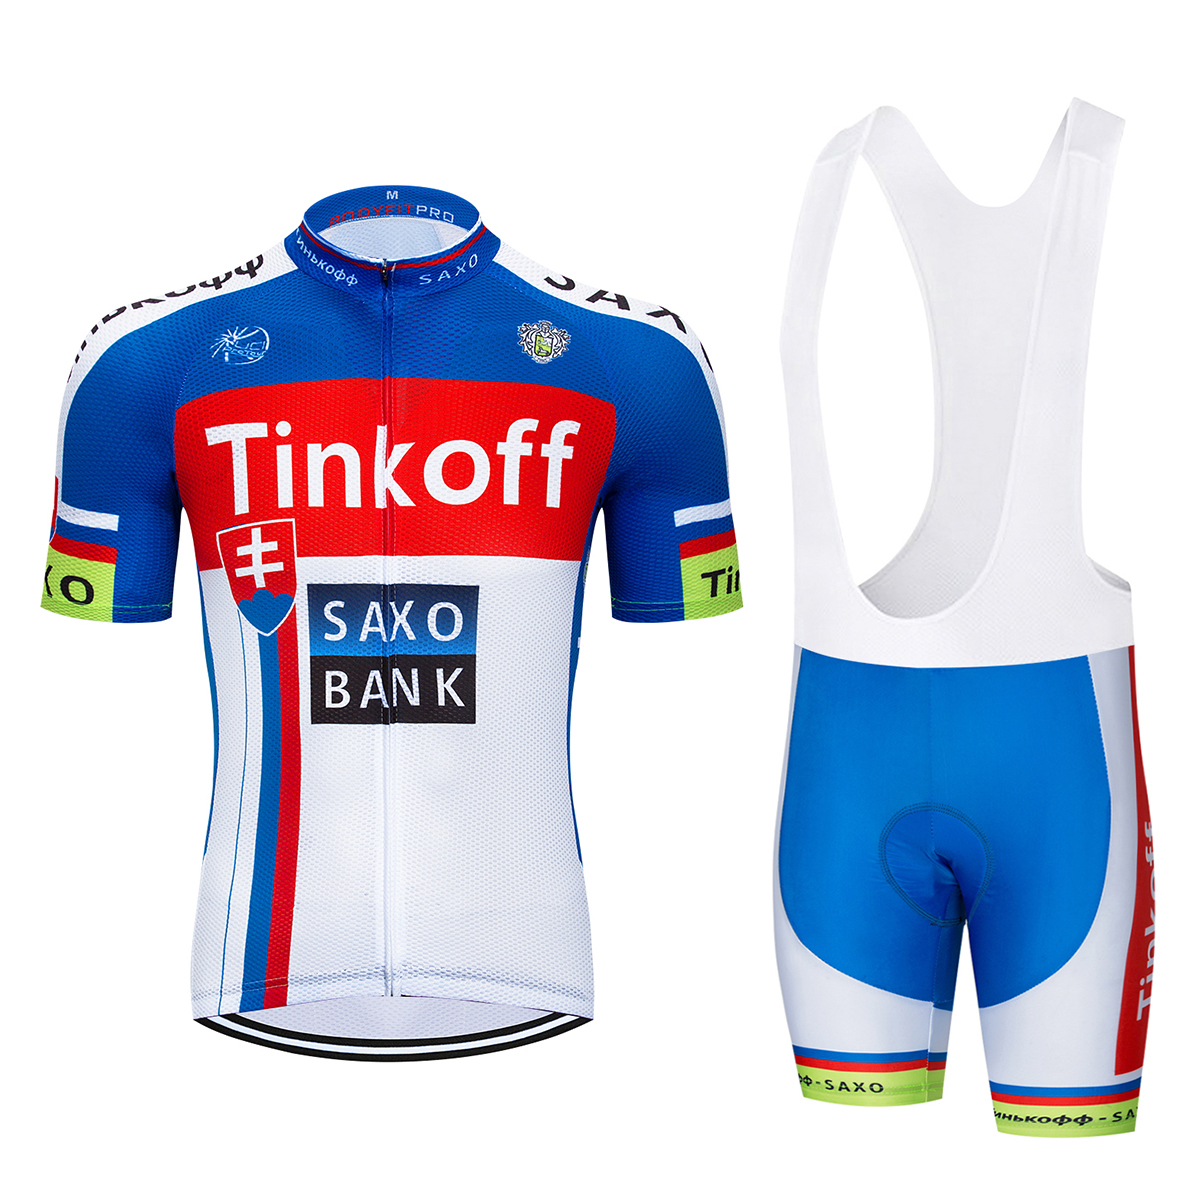 2020 TEAM tinkoff Cycling Clothing Bike jersey Ropa Ciclismo Mens Bicycle summer shirts pro Cycling Jerseys 9D pad bike shorts|Cycling Sets| |  - title=